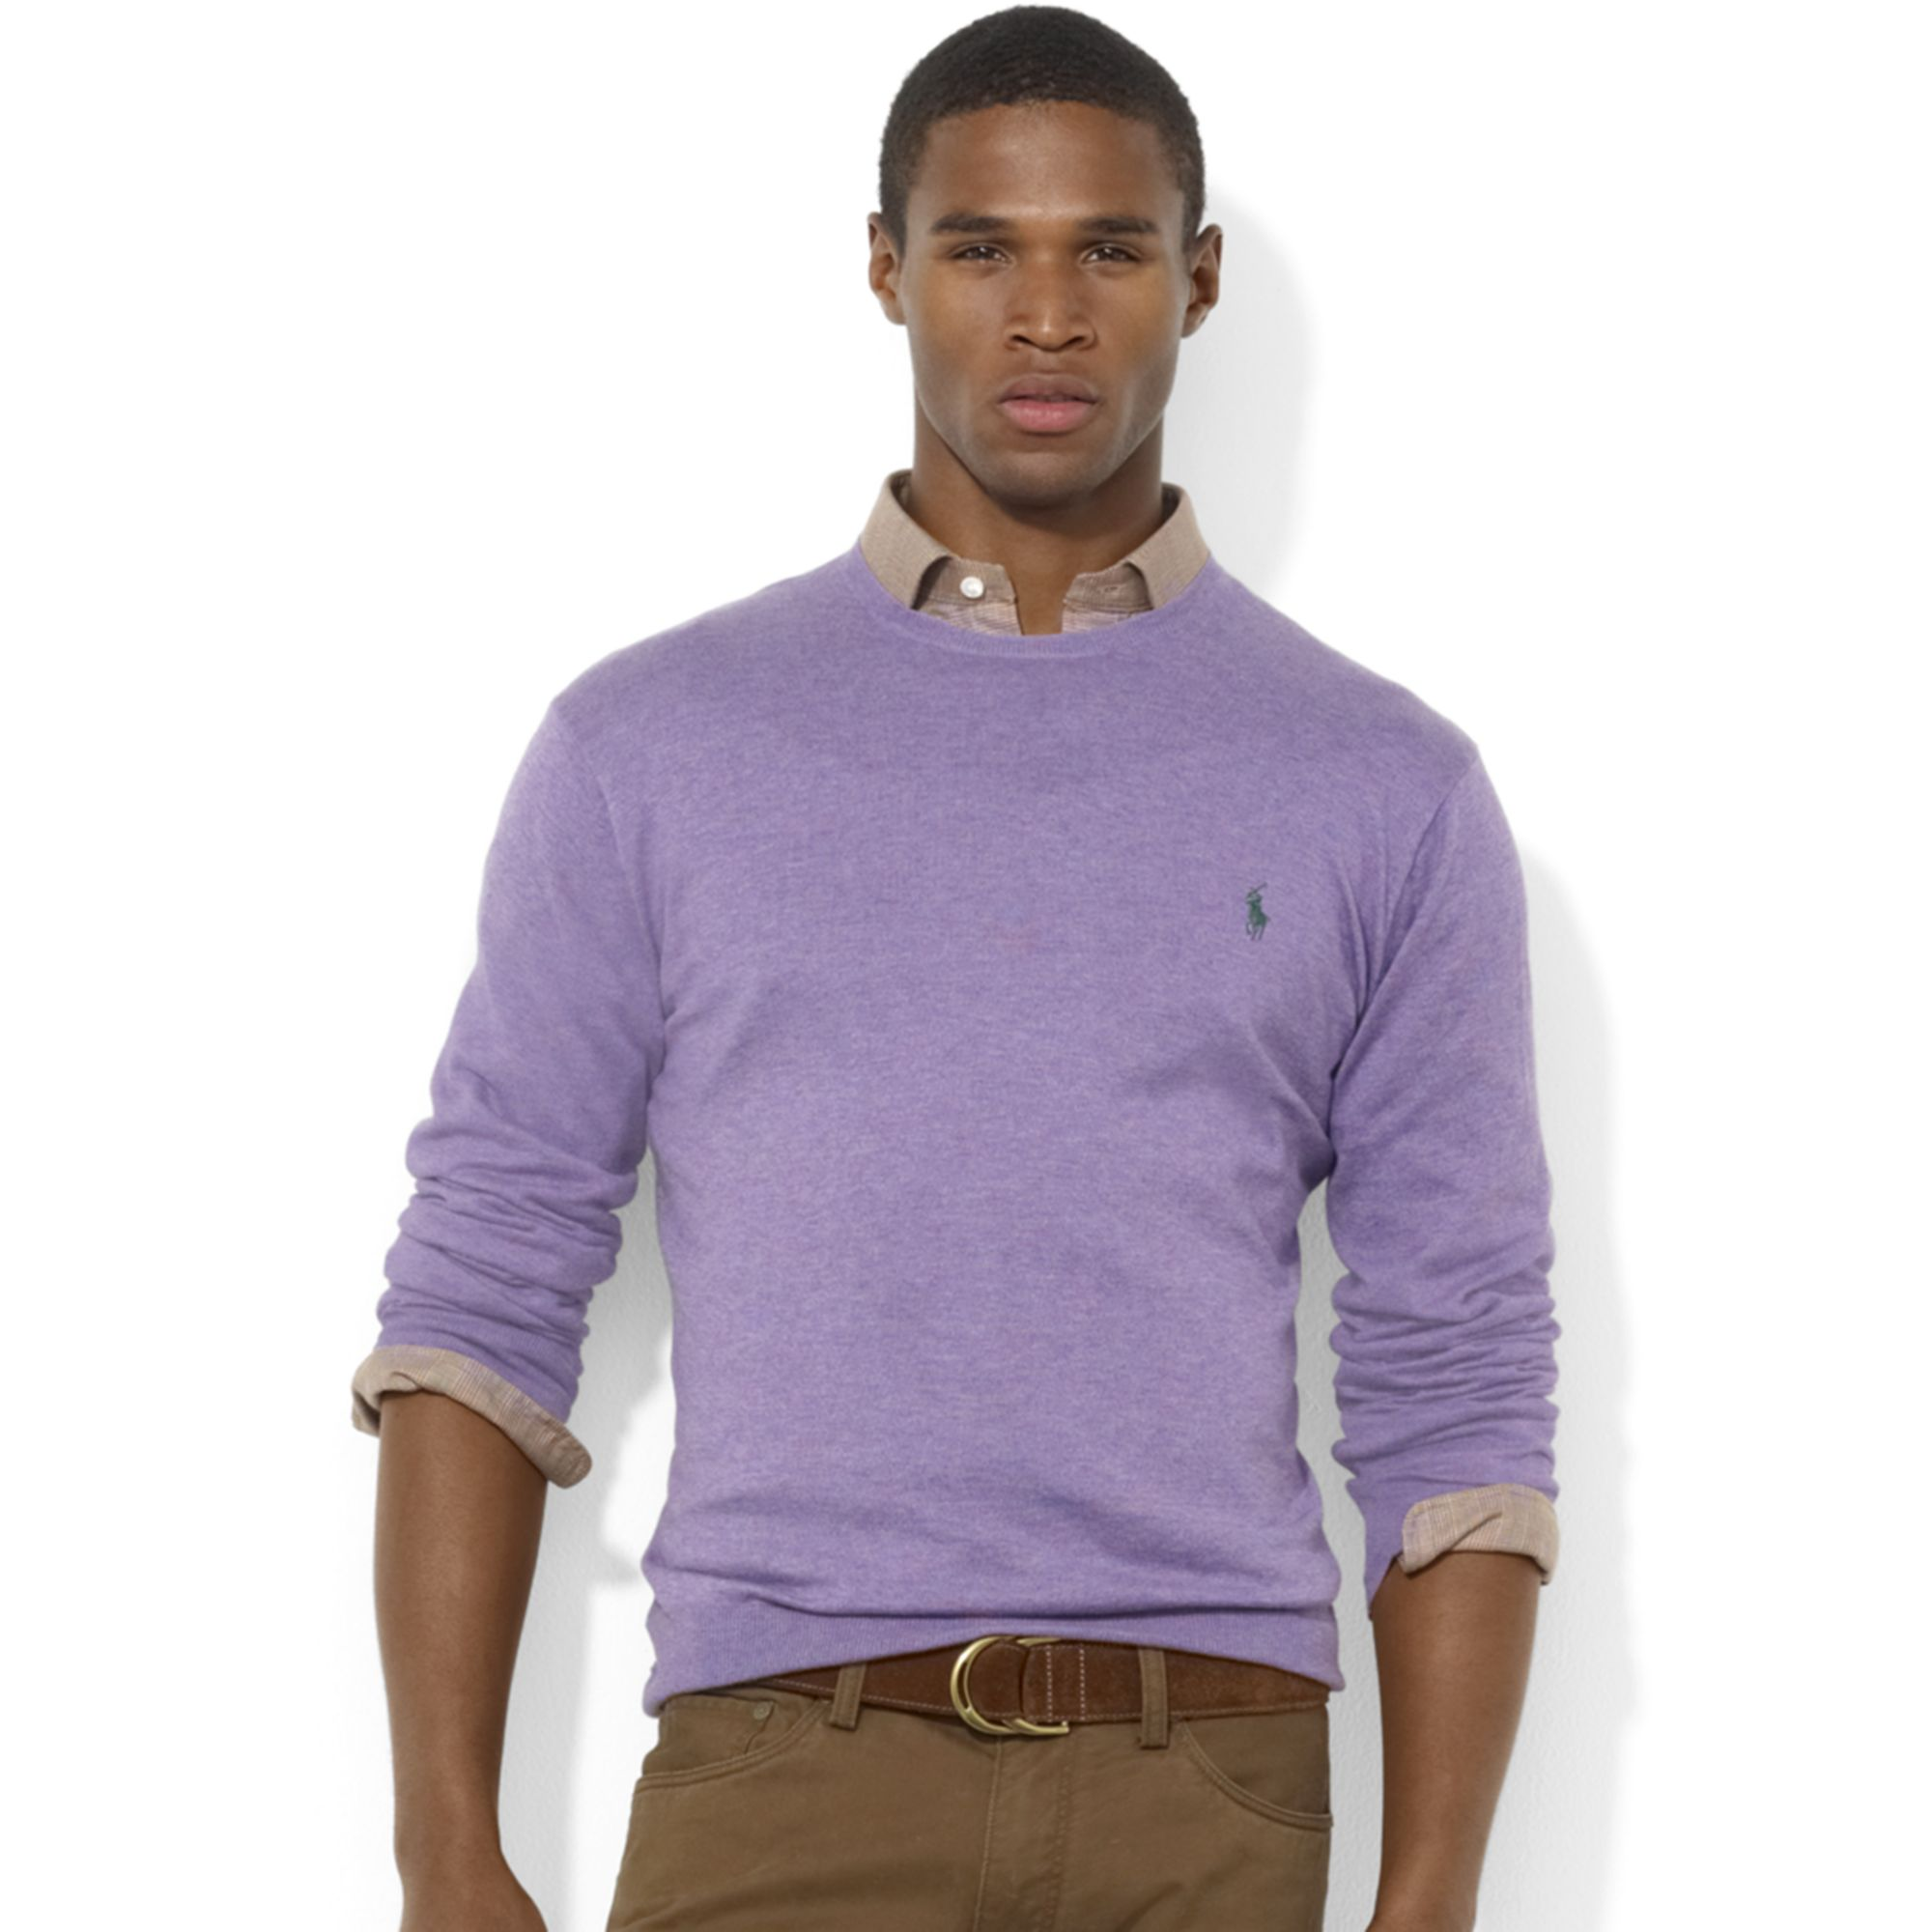 Enjoy free shipping and easy returns every day at Kohl's. Find great deals on Mens Purple Sweaters at Kohl's today!